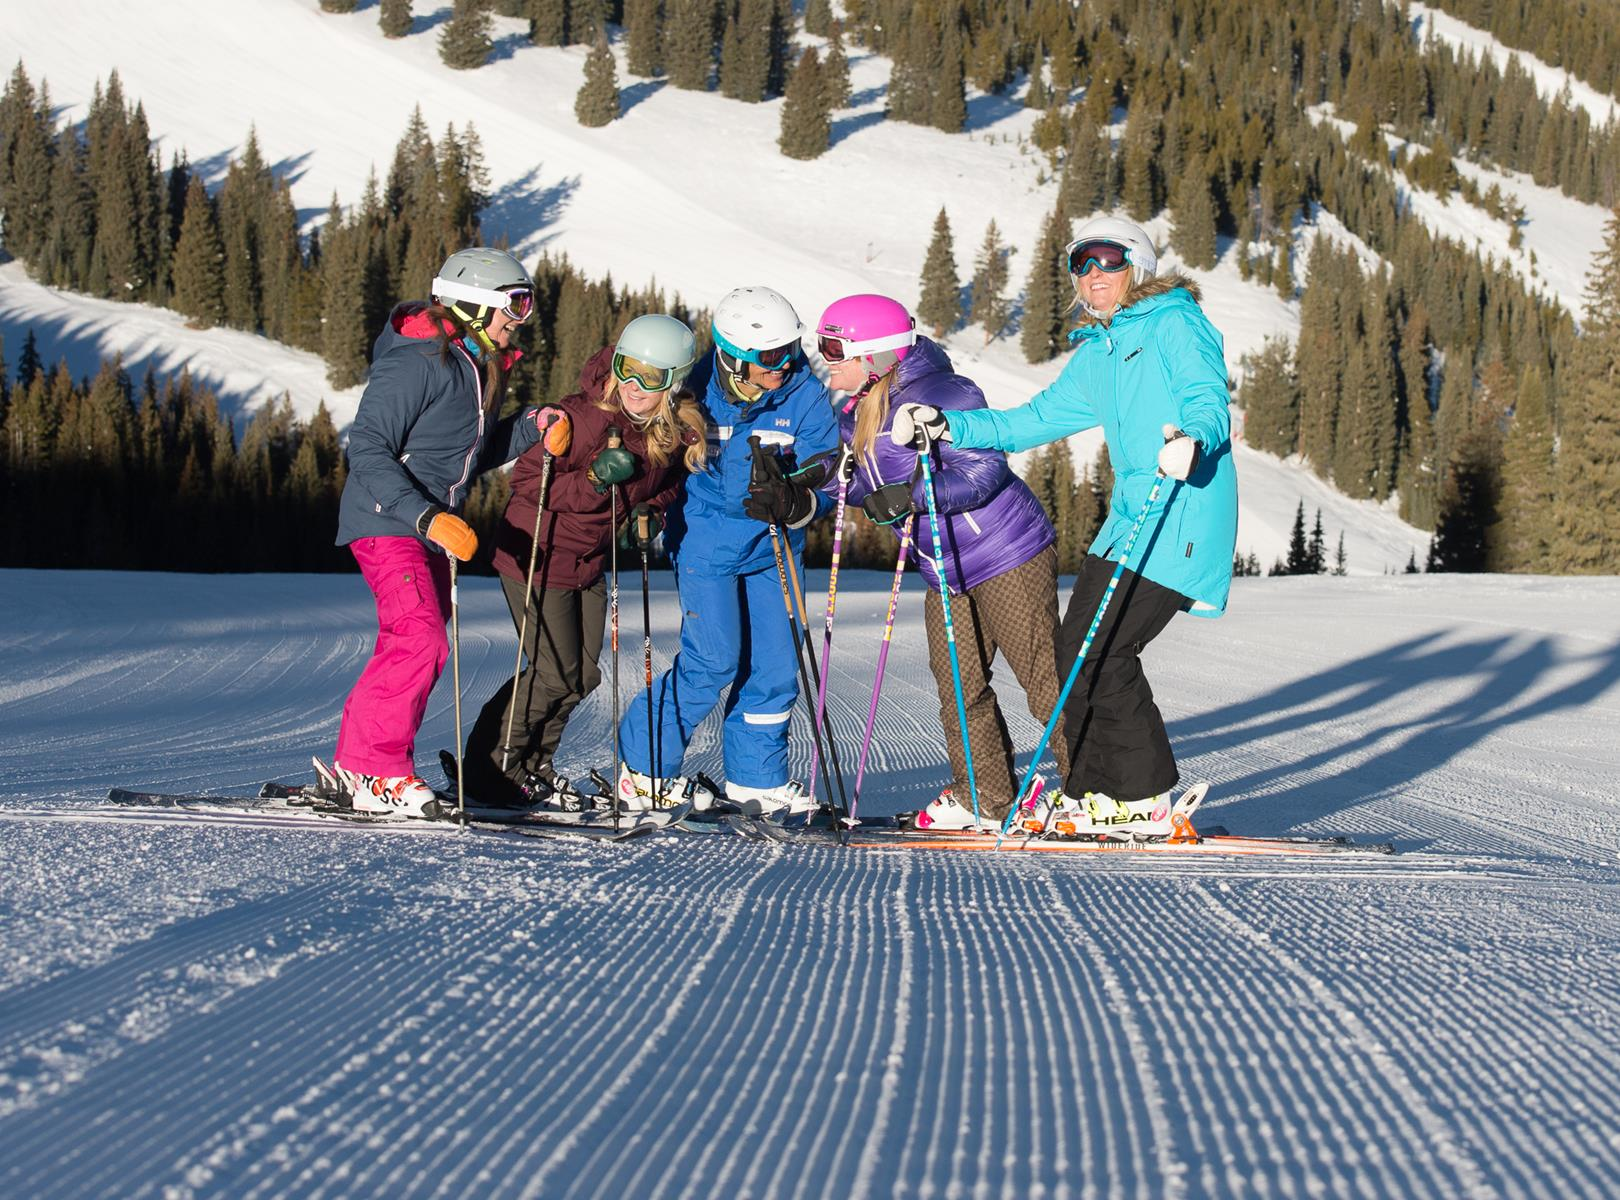 5 Reasons to Choose a Ski Holiday for Your Next Student Trip